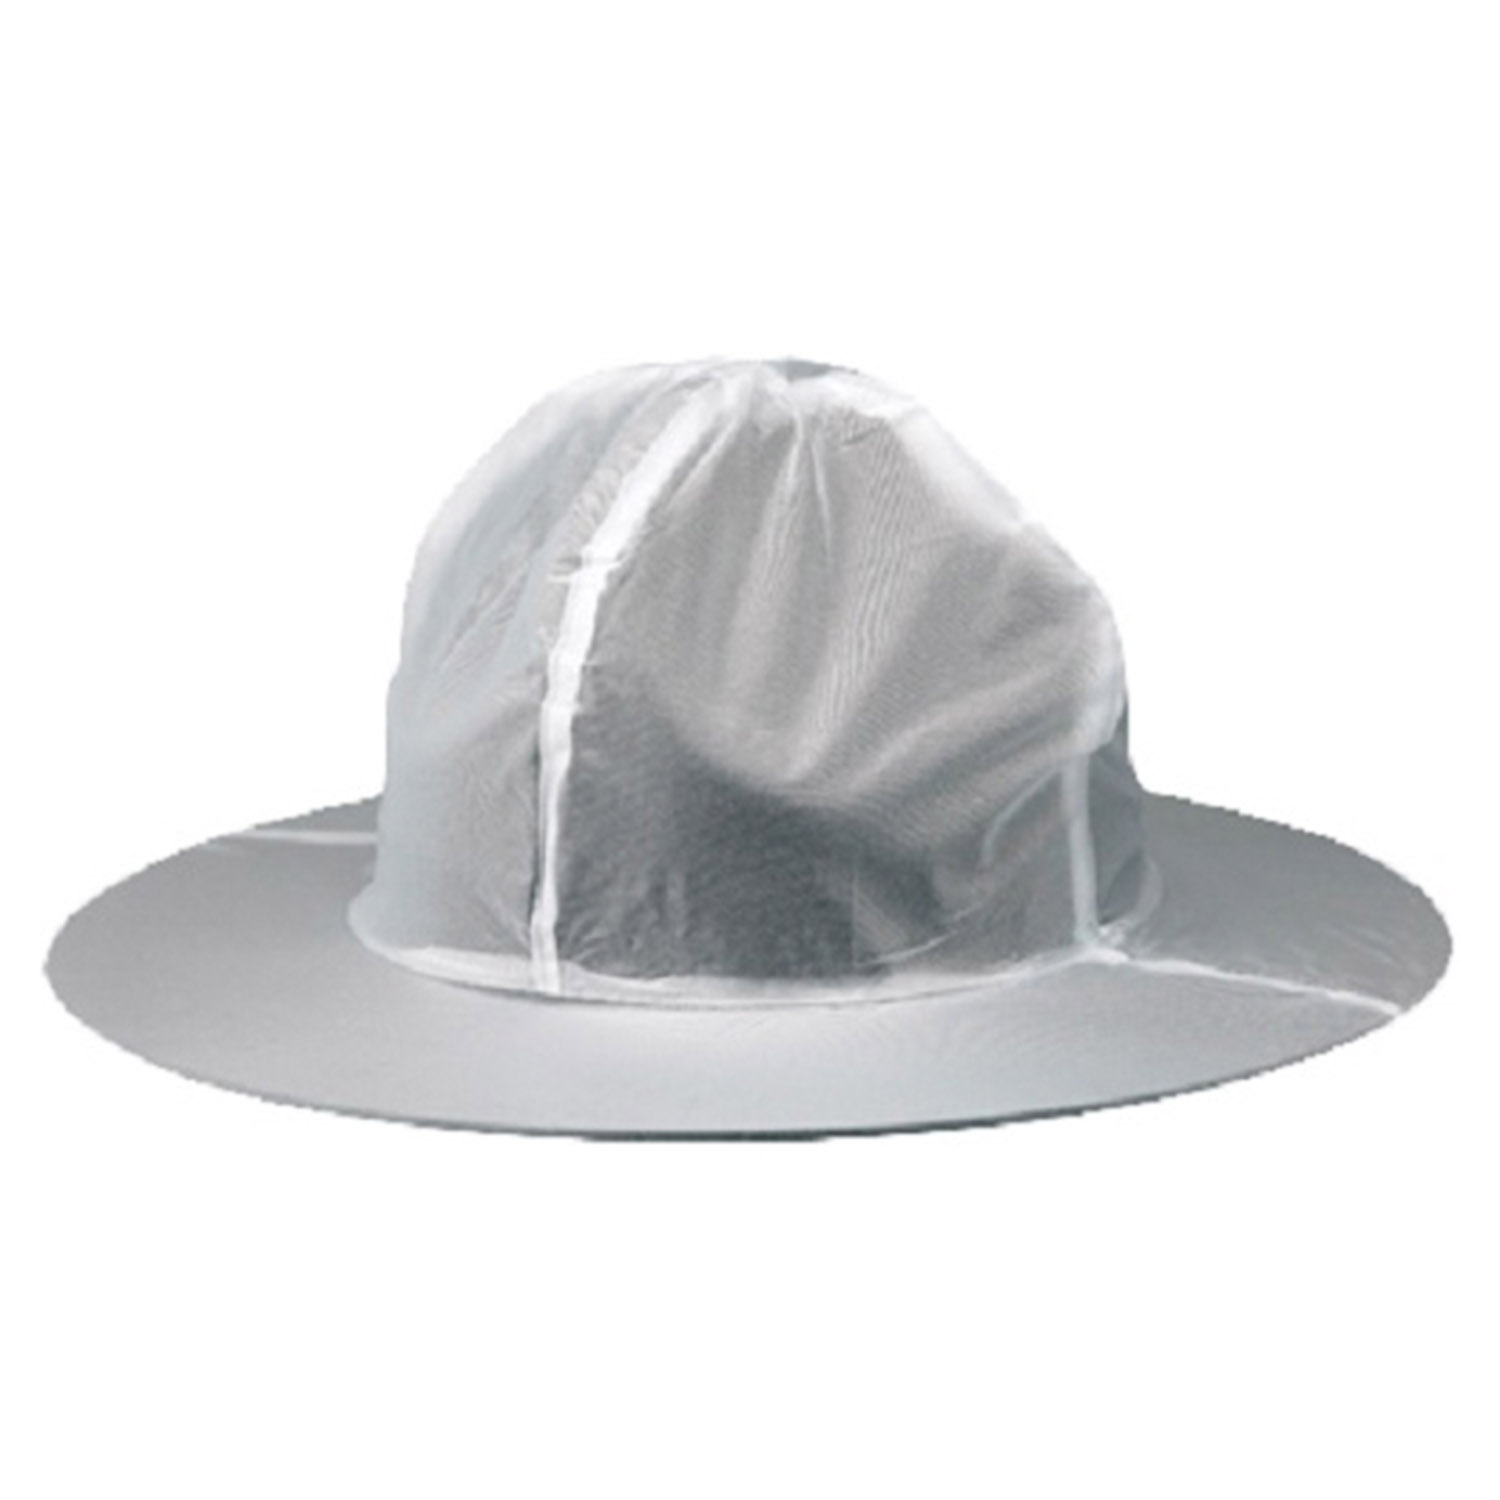 Galls Campaign Hat Rain Cover